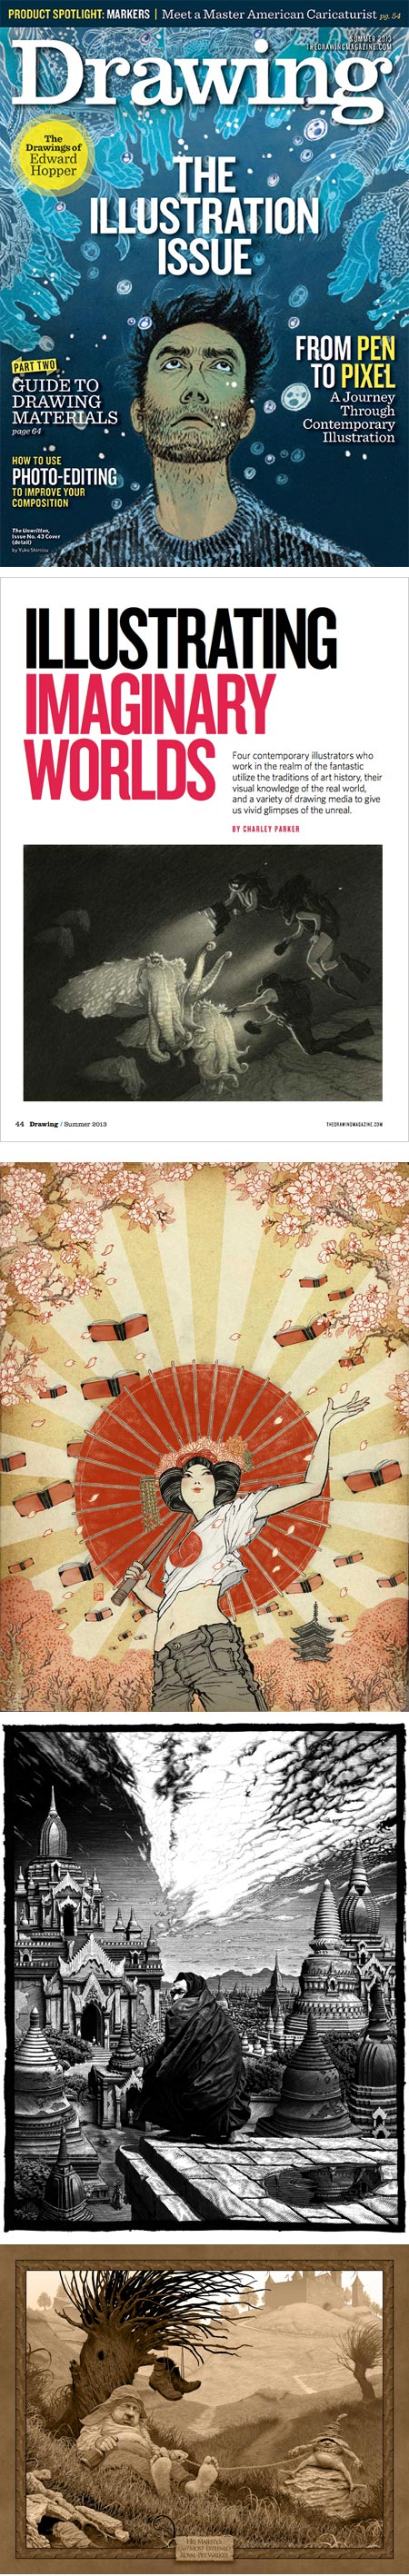 Drawing magazine, Summer 2013: Yuko Shimizu (cover, also features inside), Mark Schultz (on article opening page), Yuko Shimizu, Patrick Arrasmith and Ed Binkley